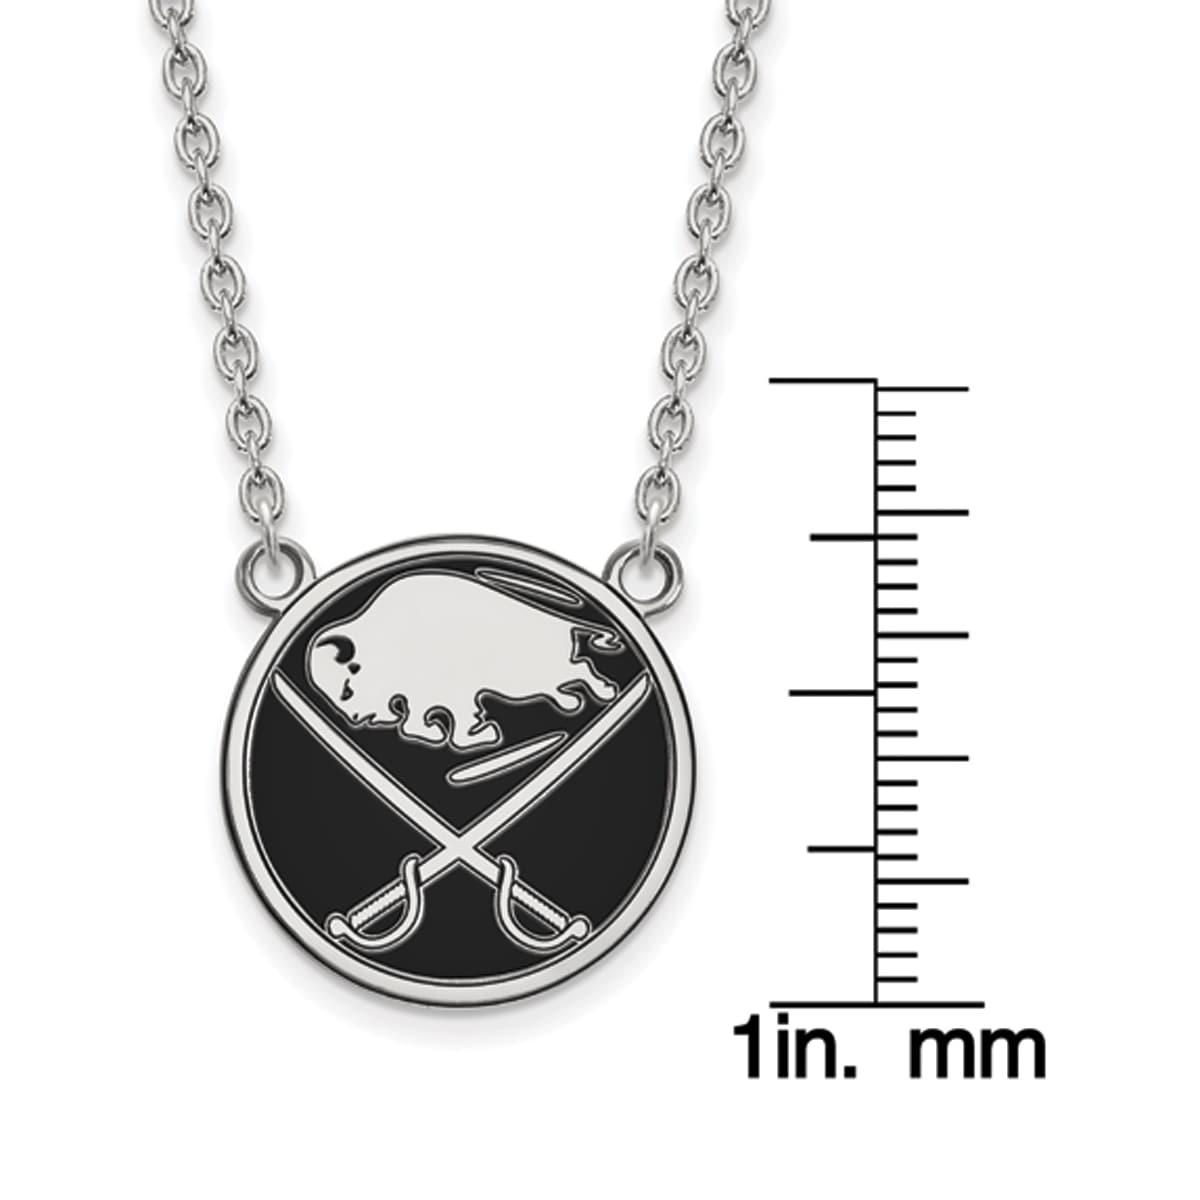 Mireval Sterling Silver Anti-Tarnish Treated Cross Disc Charm on an Optional Charm Holder